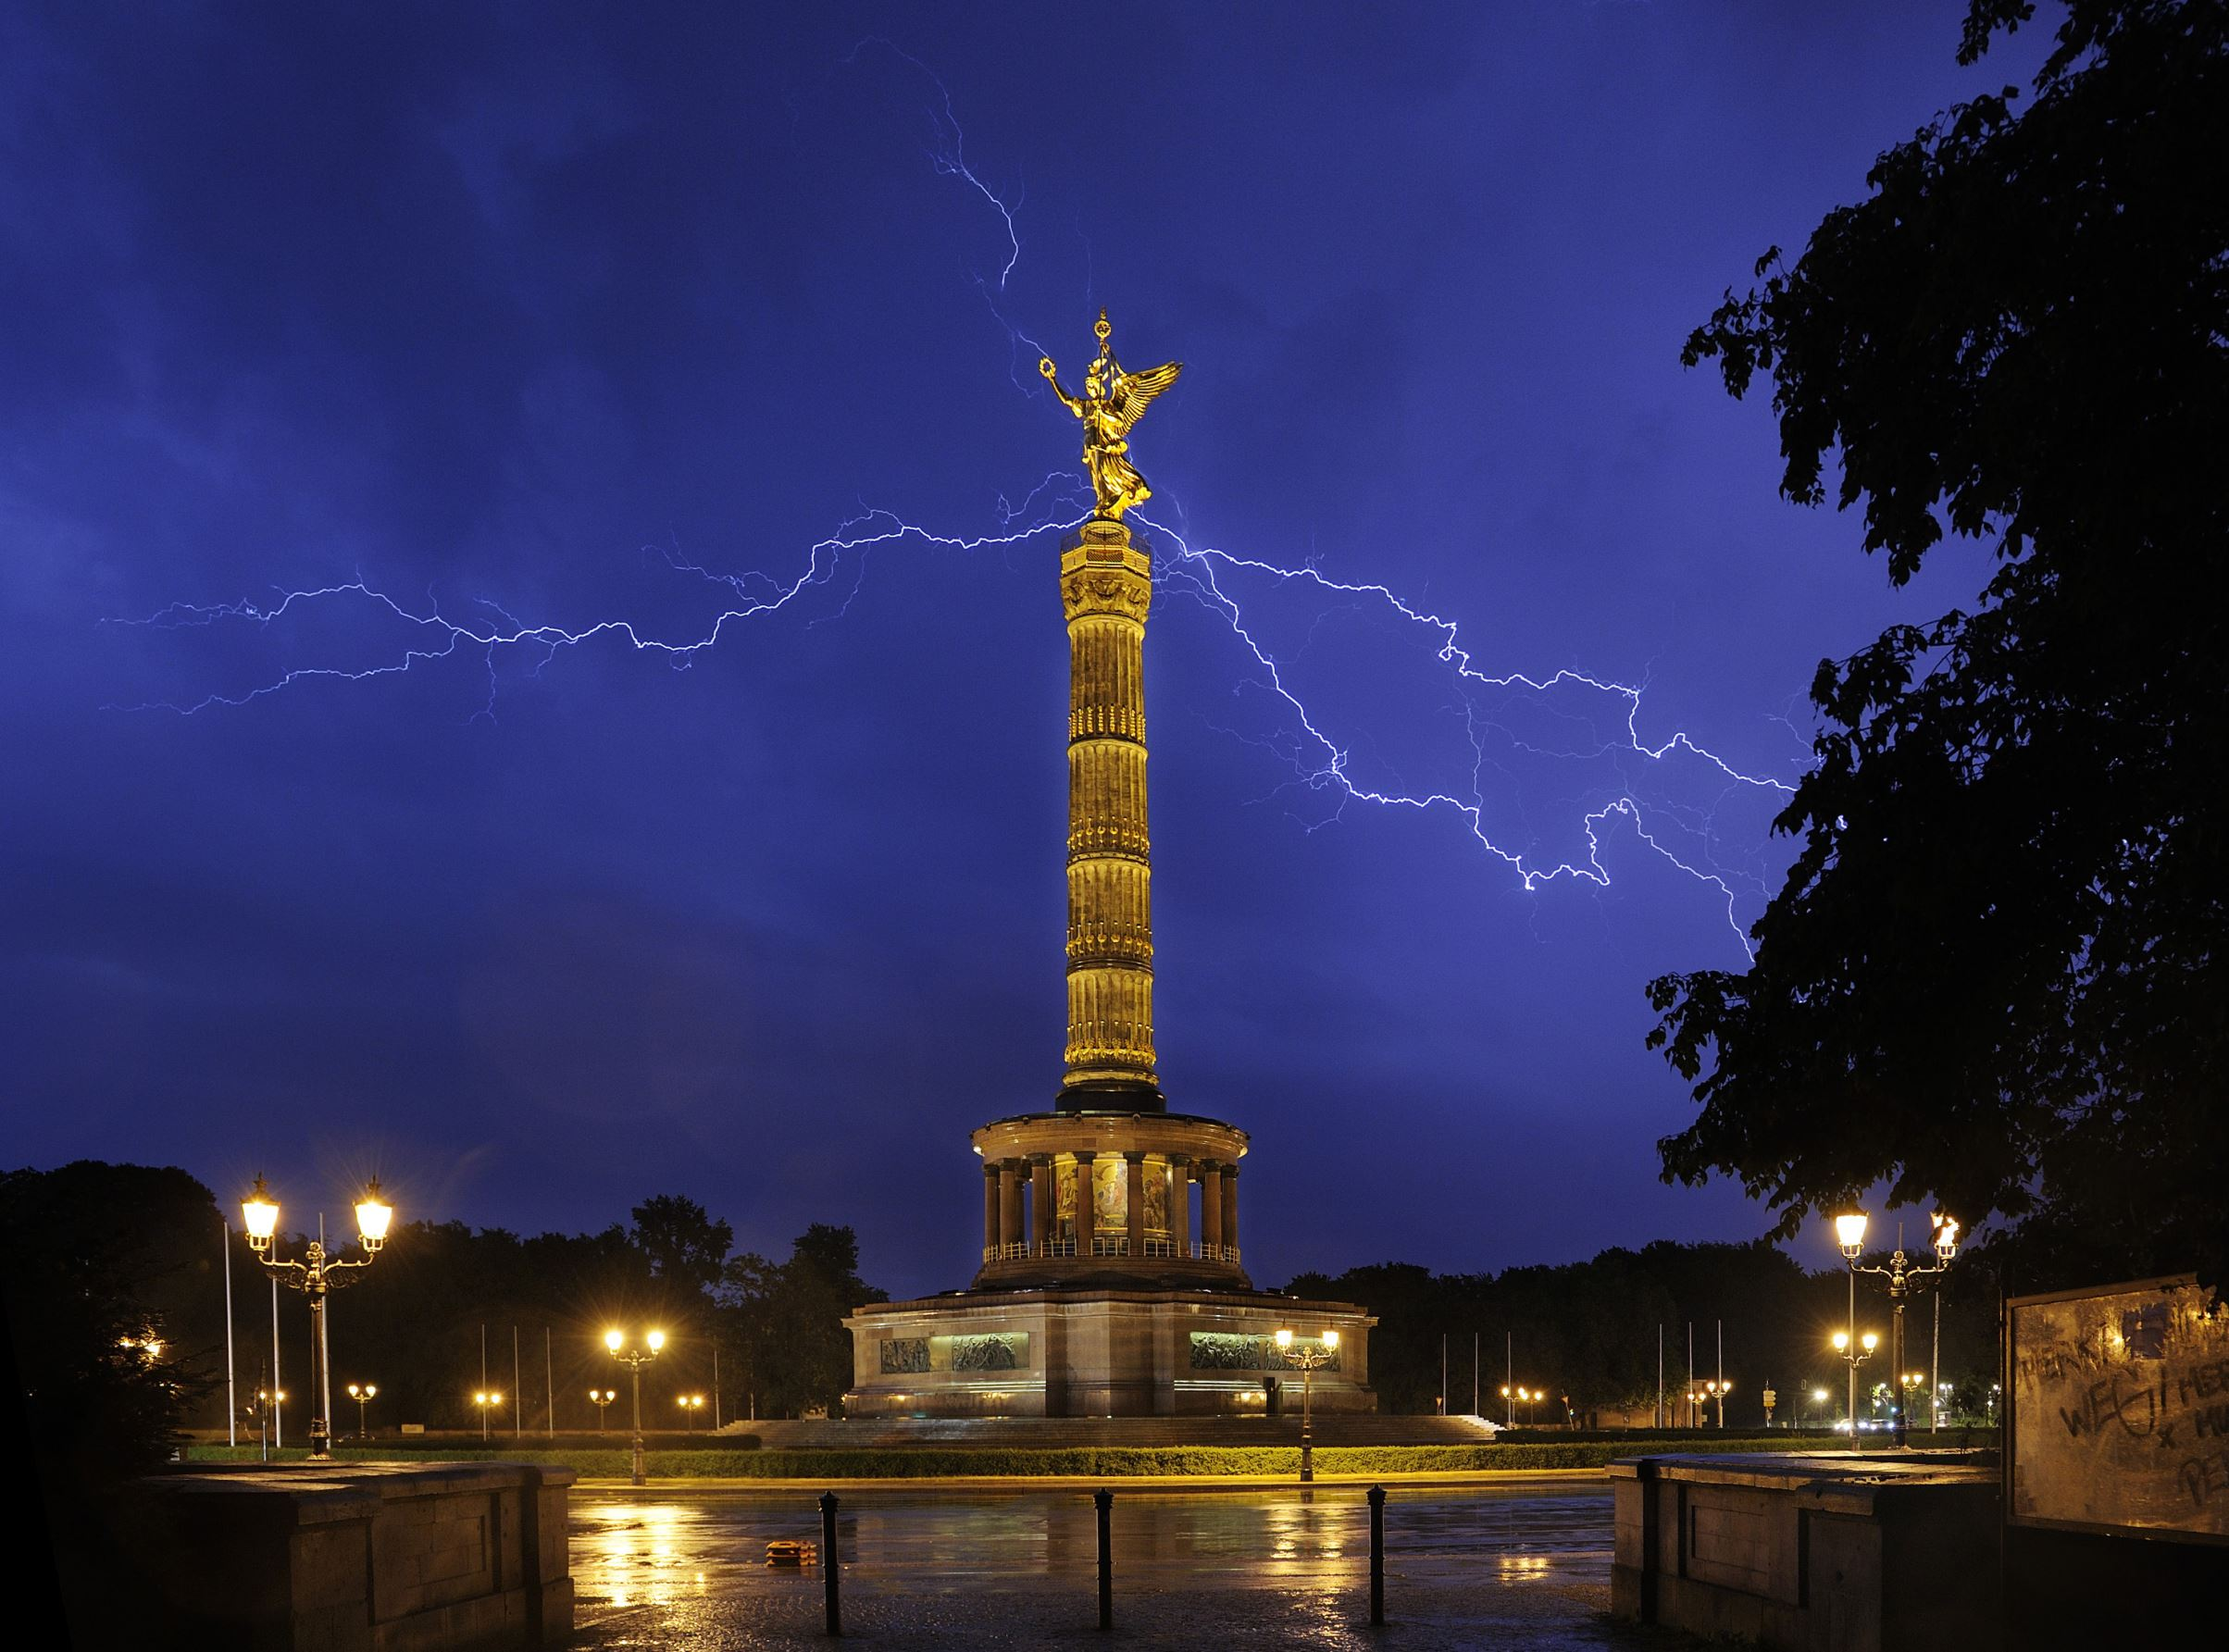 Слайд 49 из 86: Lightning storm, Berlin, Germany - 23 May 2016 Lightning storm above the Berlin Victory Column